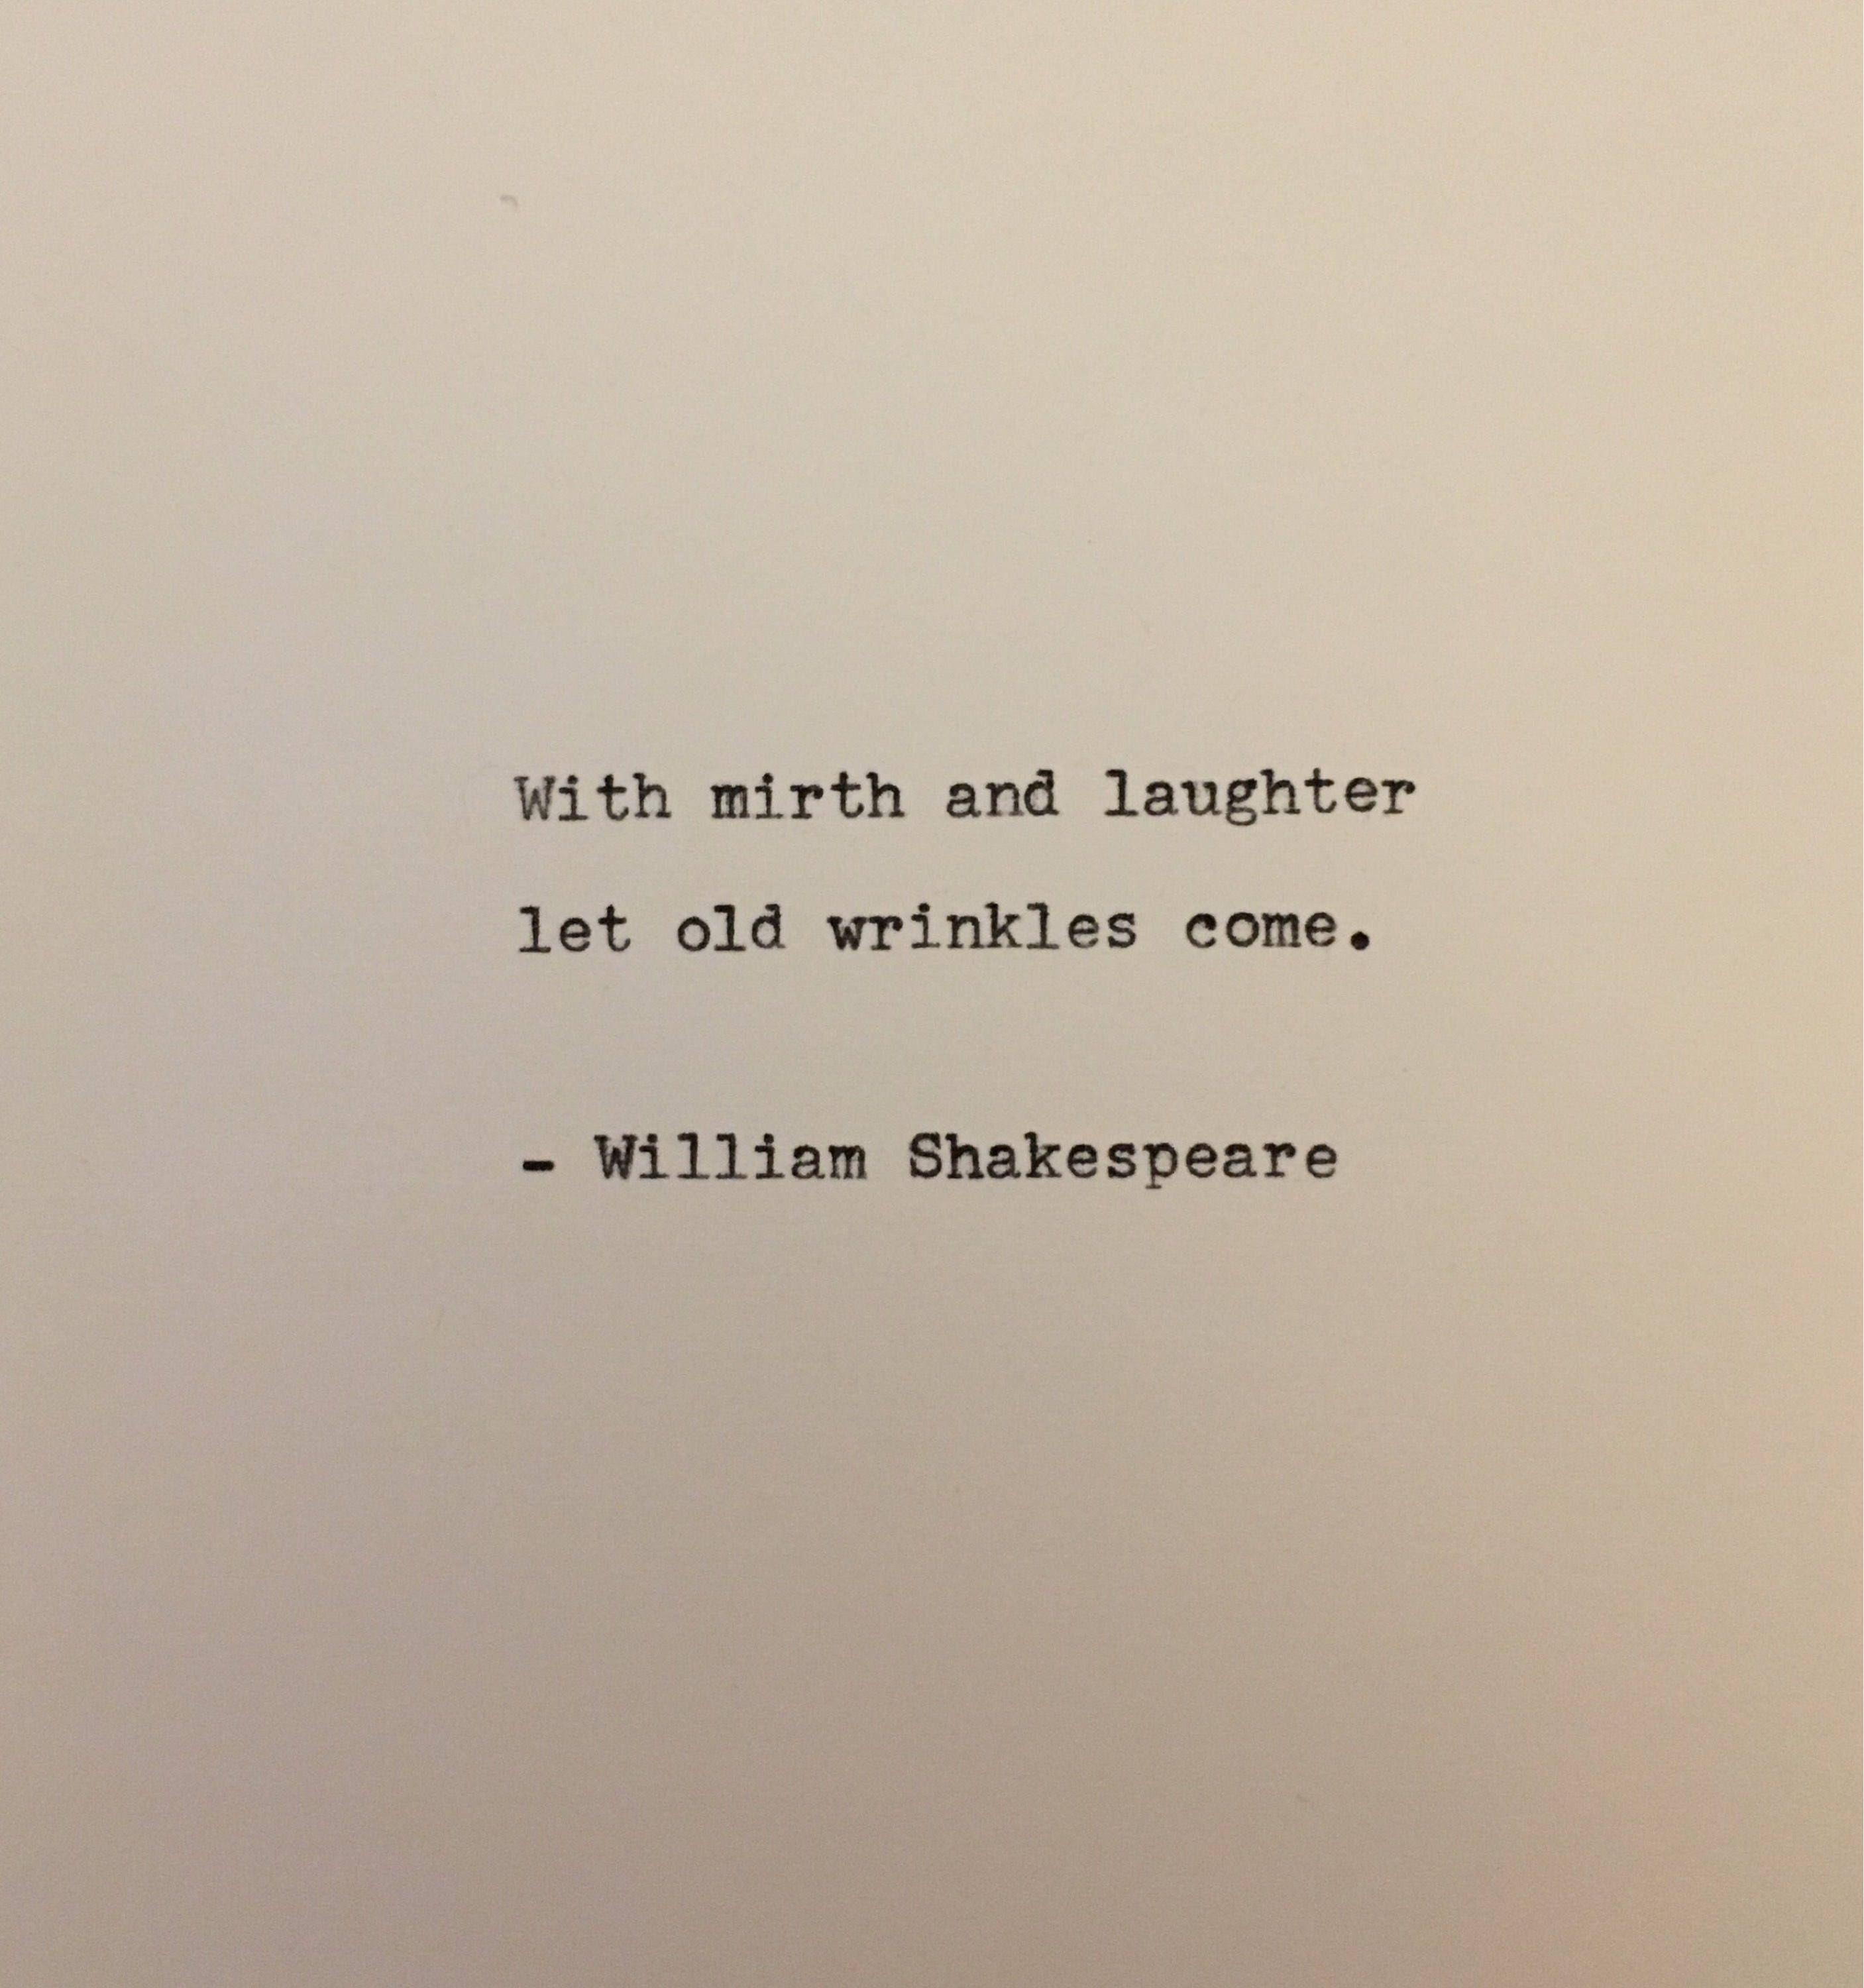 William Shakespeare Romeo and Juliet quote typed on typewriter   Etsy